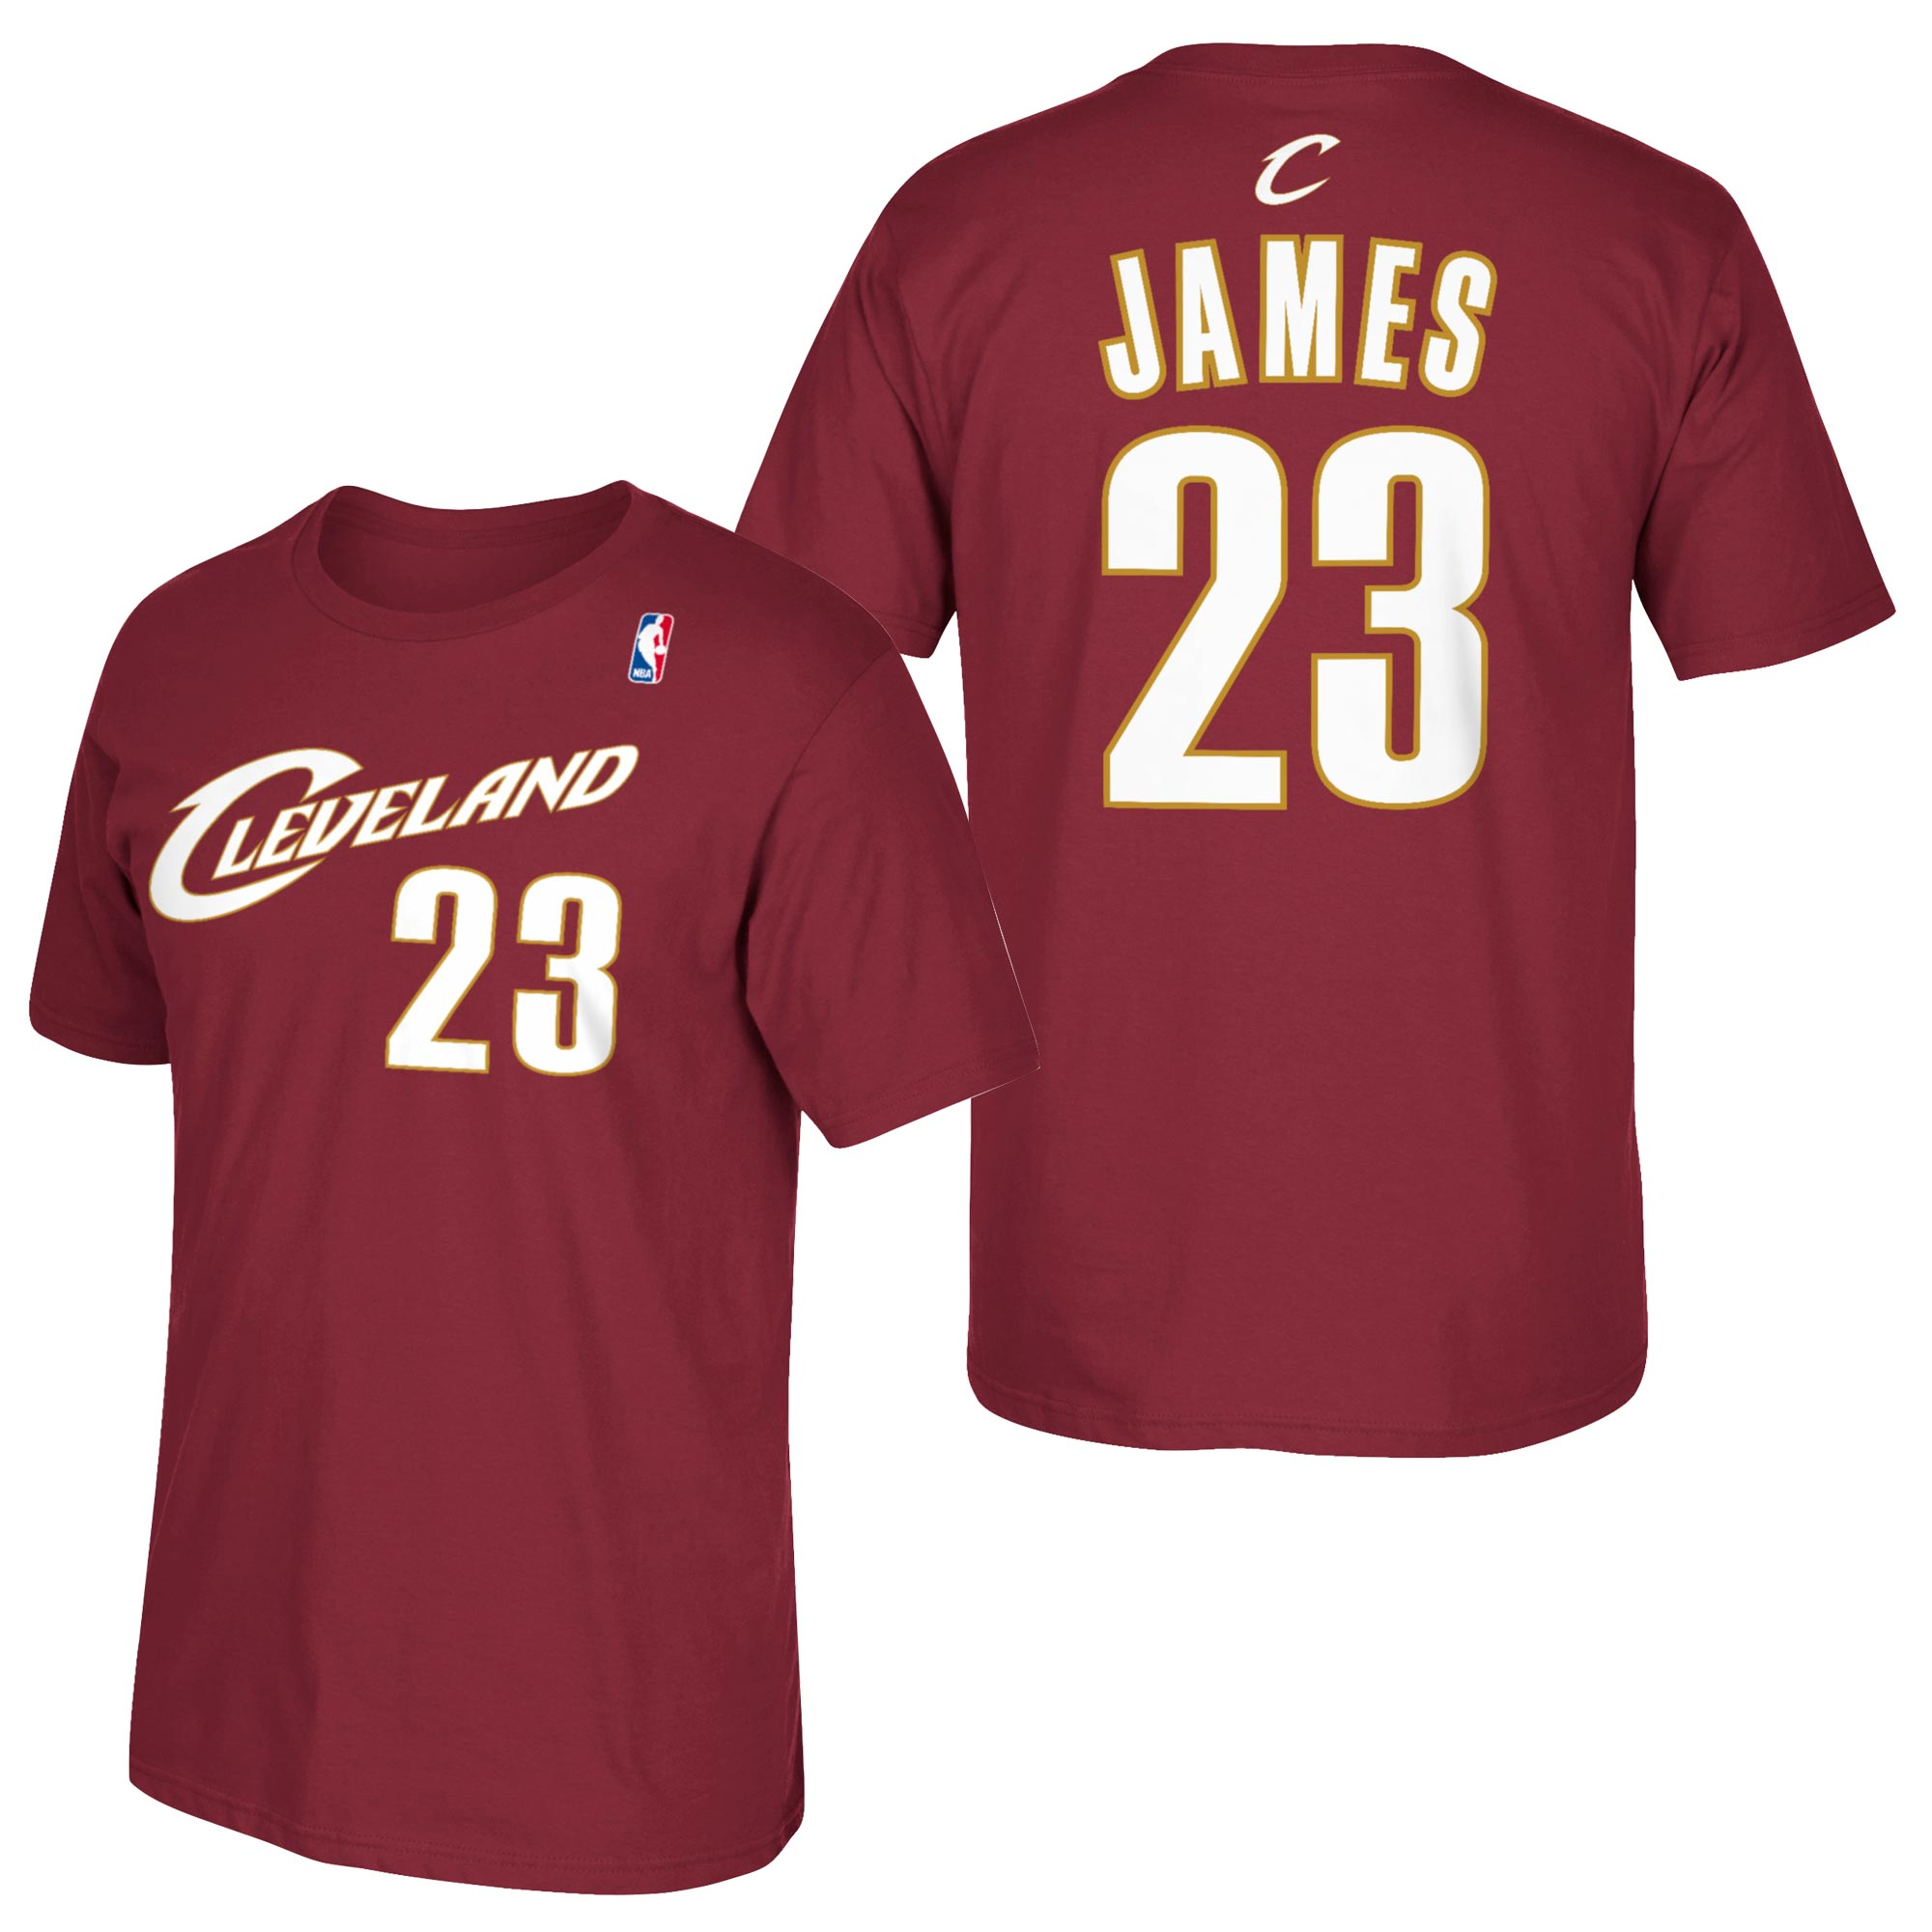 Cleveland Cavaliers adidas Soul Name & Number T-Shirt - LeBron James -